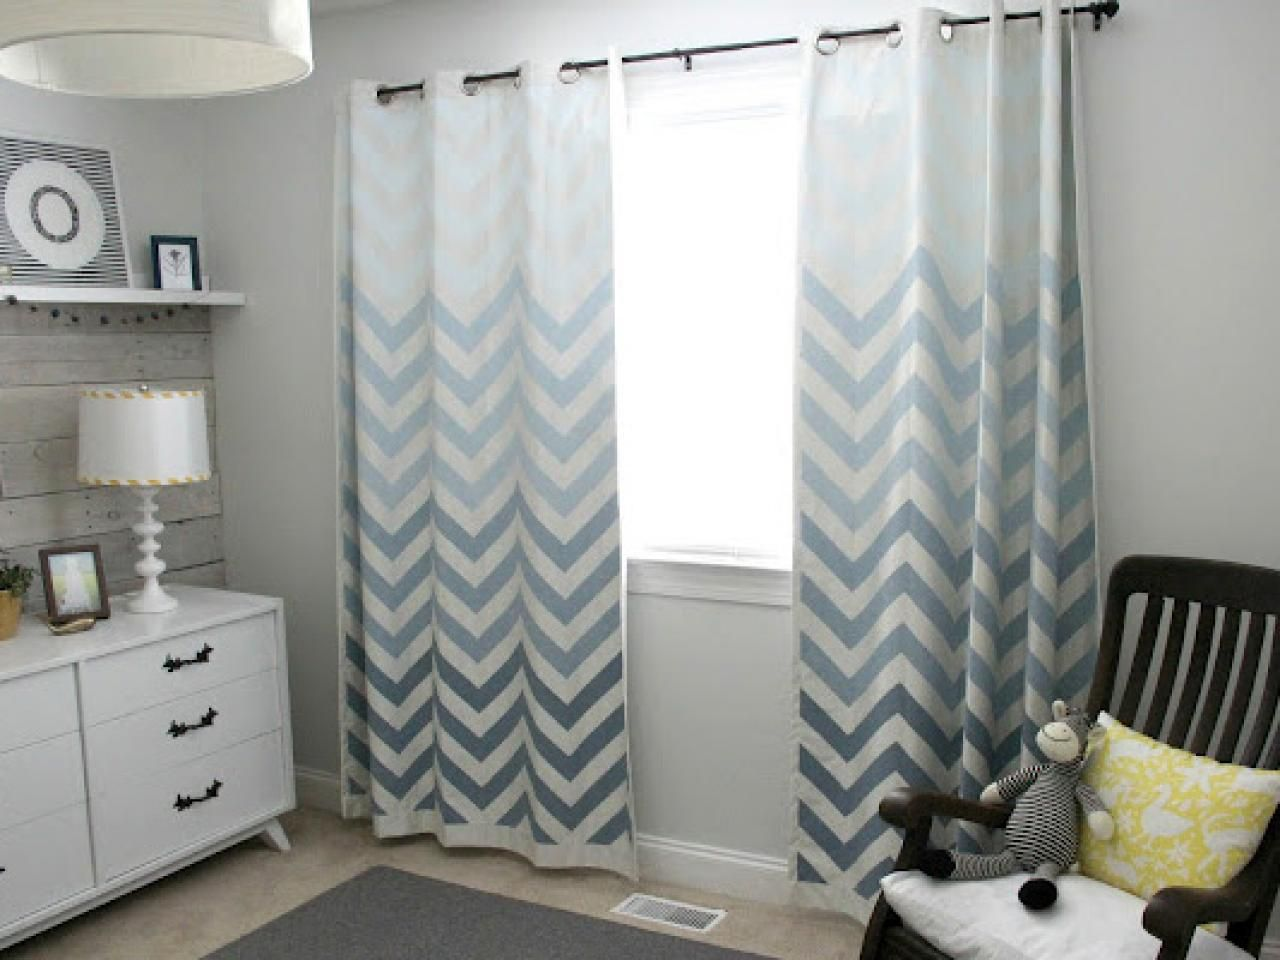 Nursery window ideas   things you didnut know you could paint  ikea curtains window and